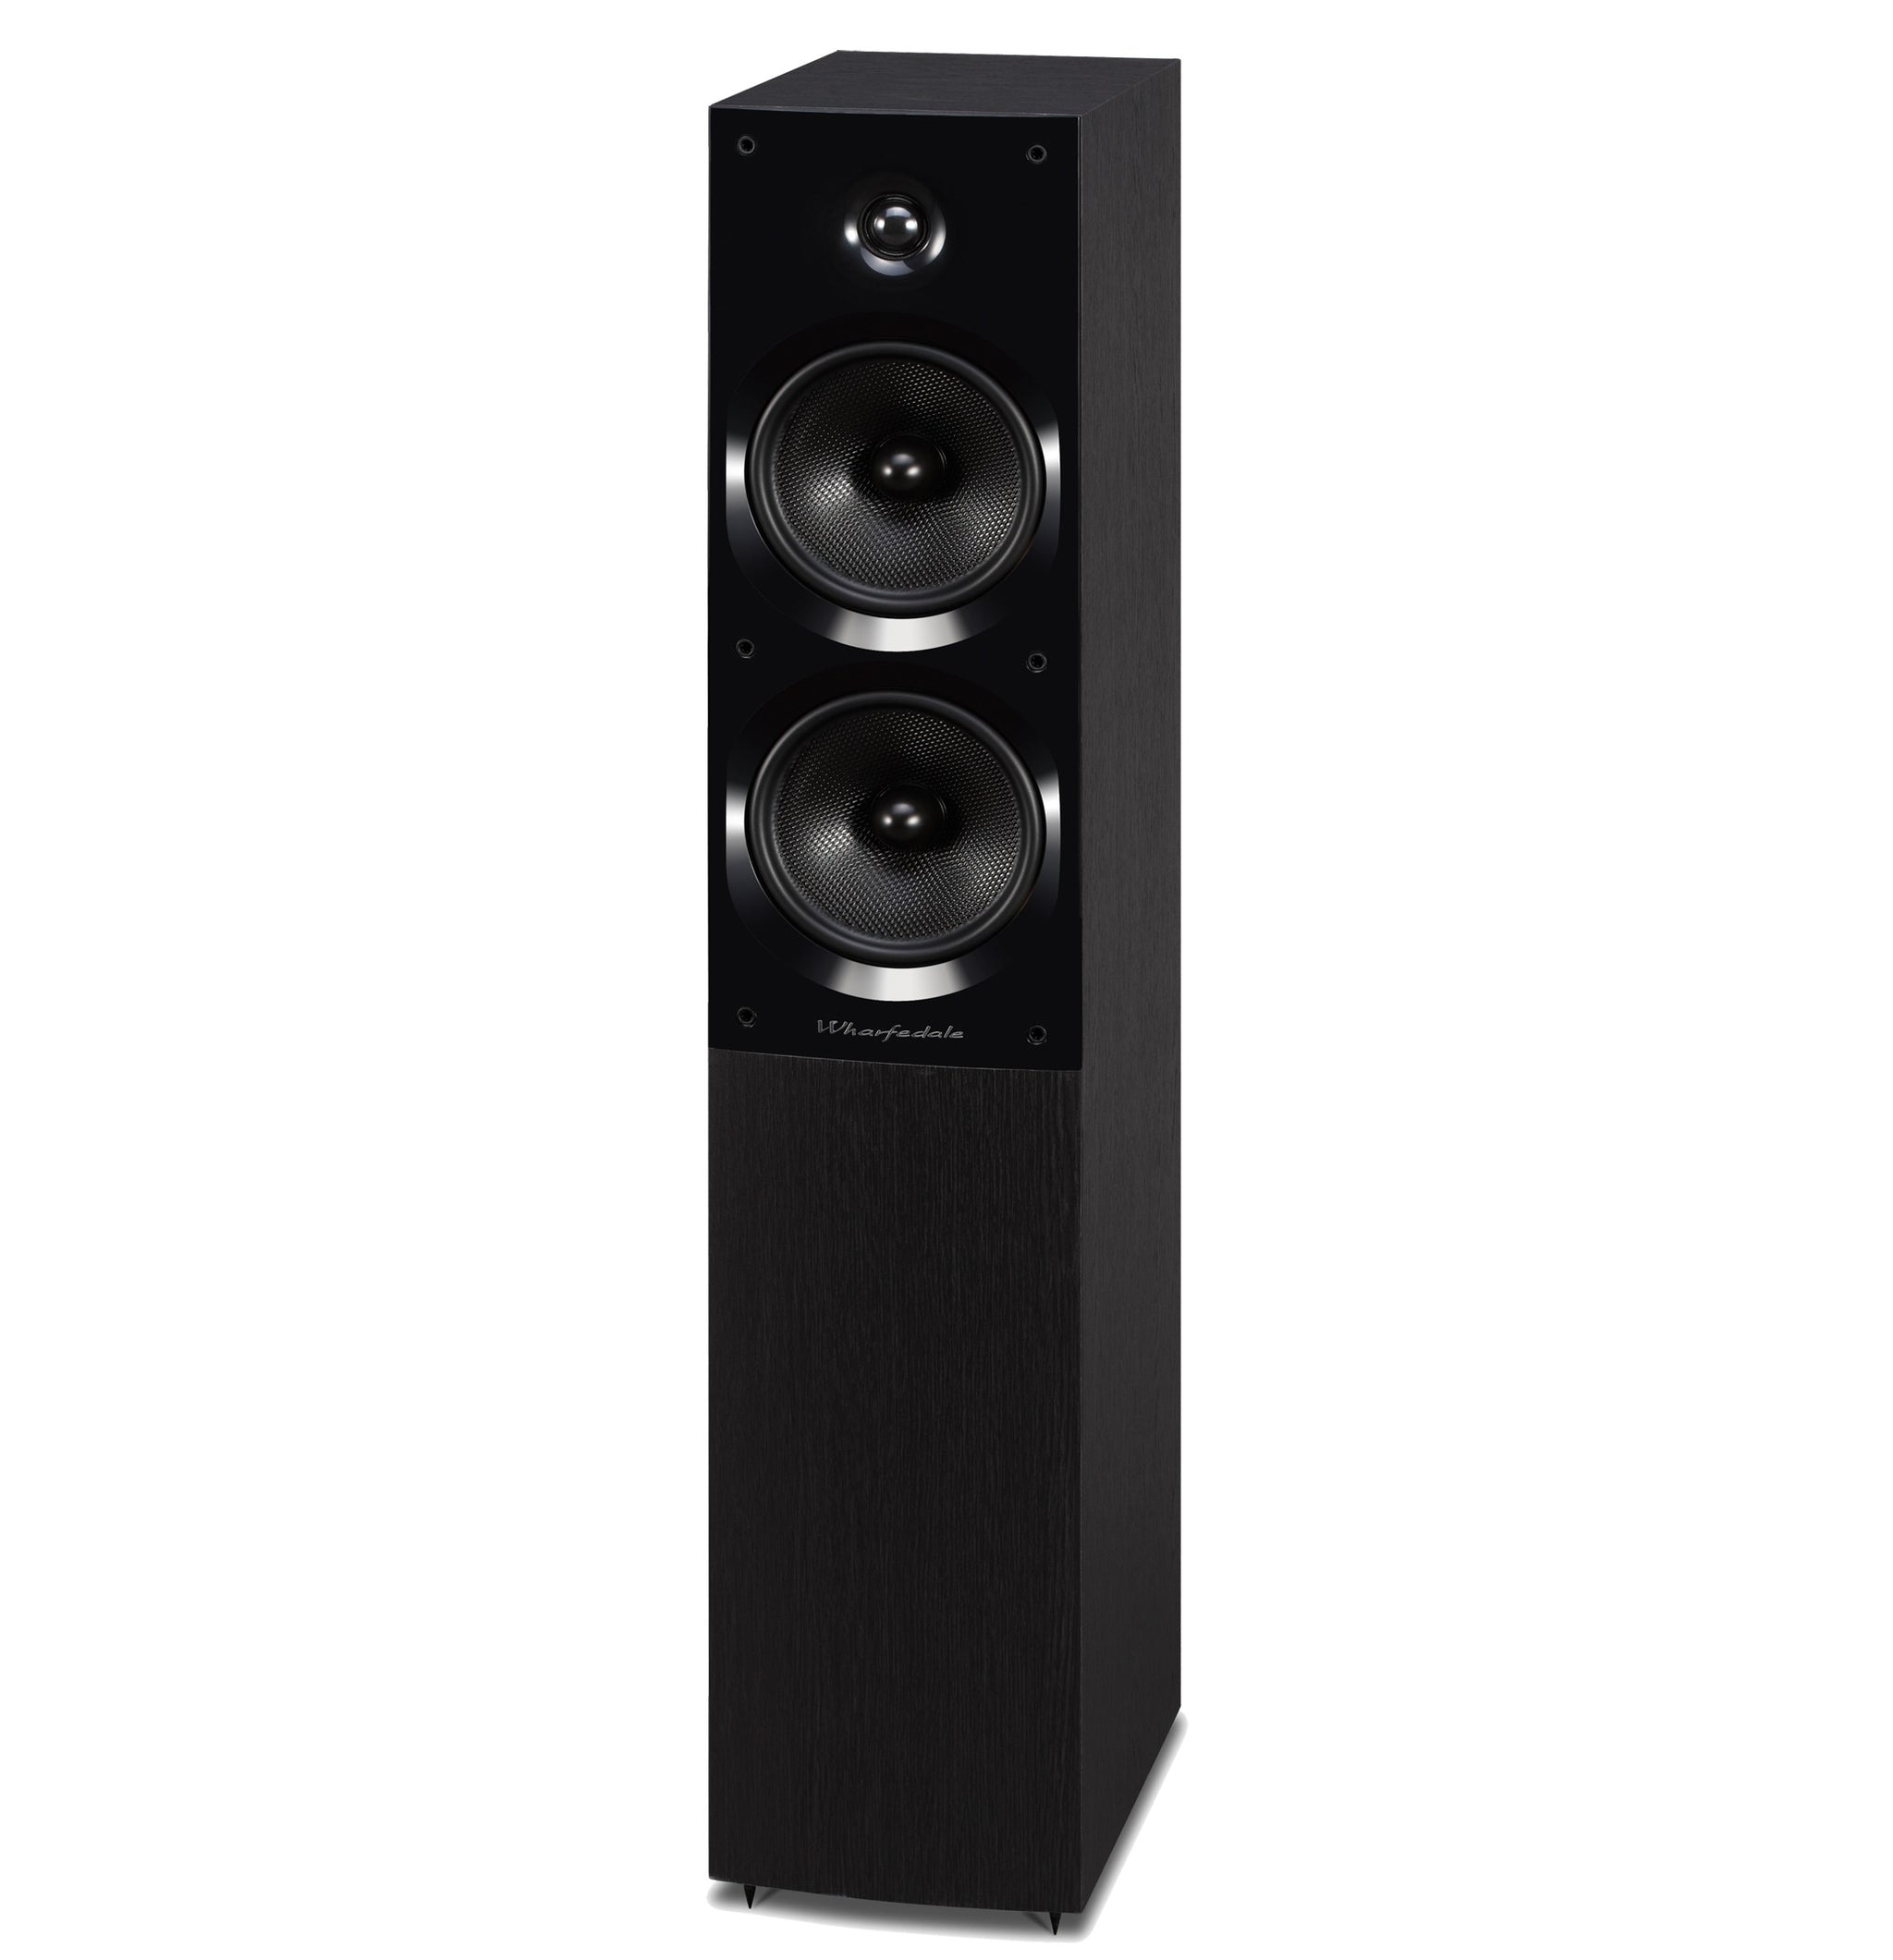 Quartz Q7 Floorstanding Speakers